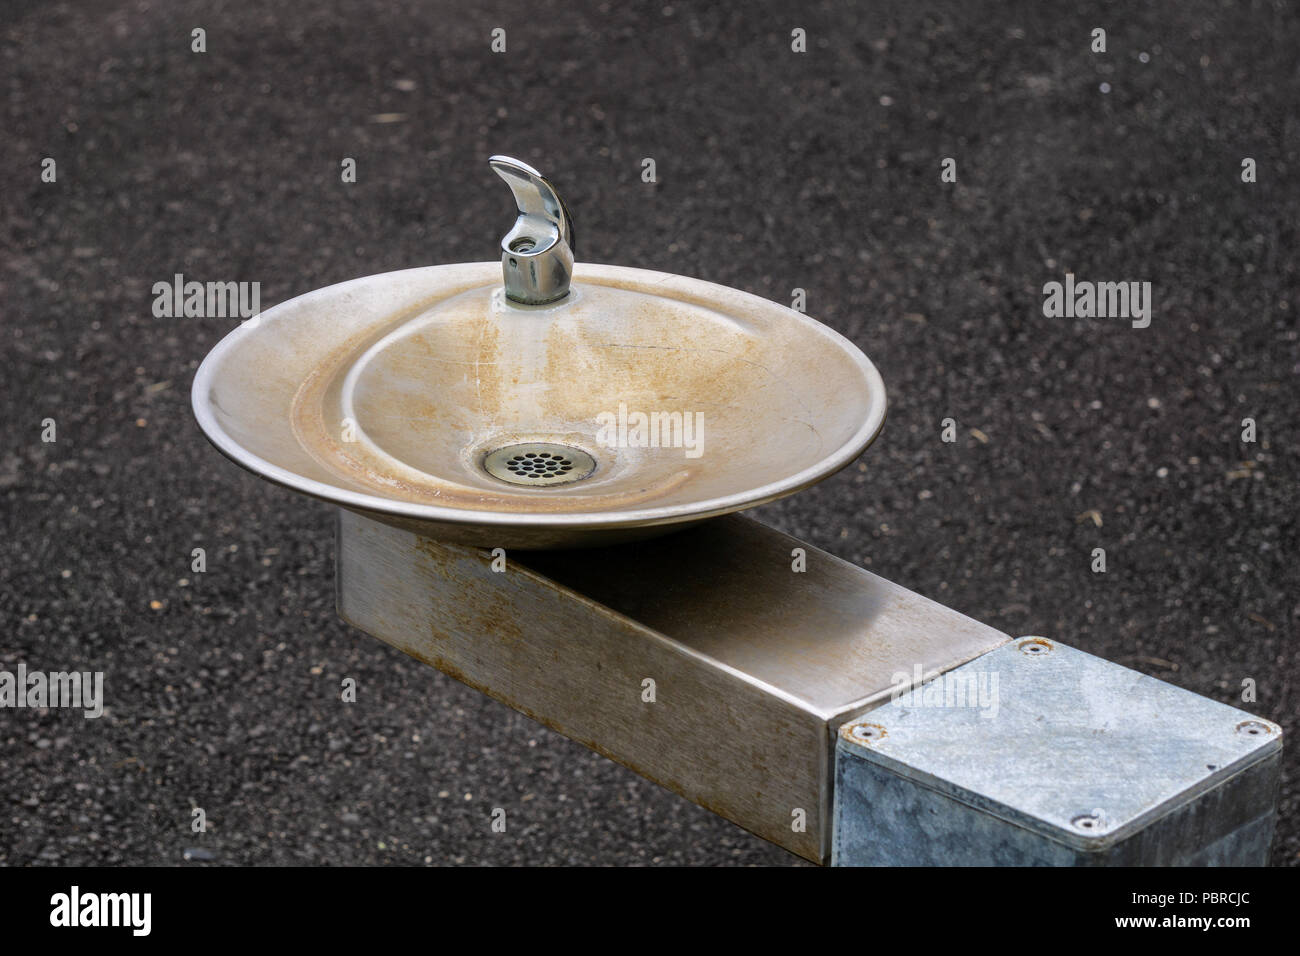 water fountain tap